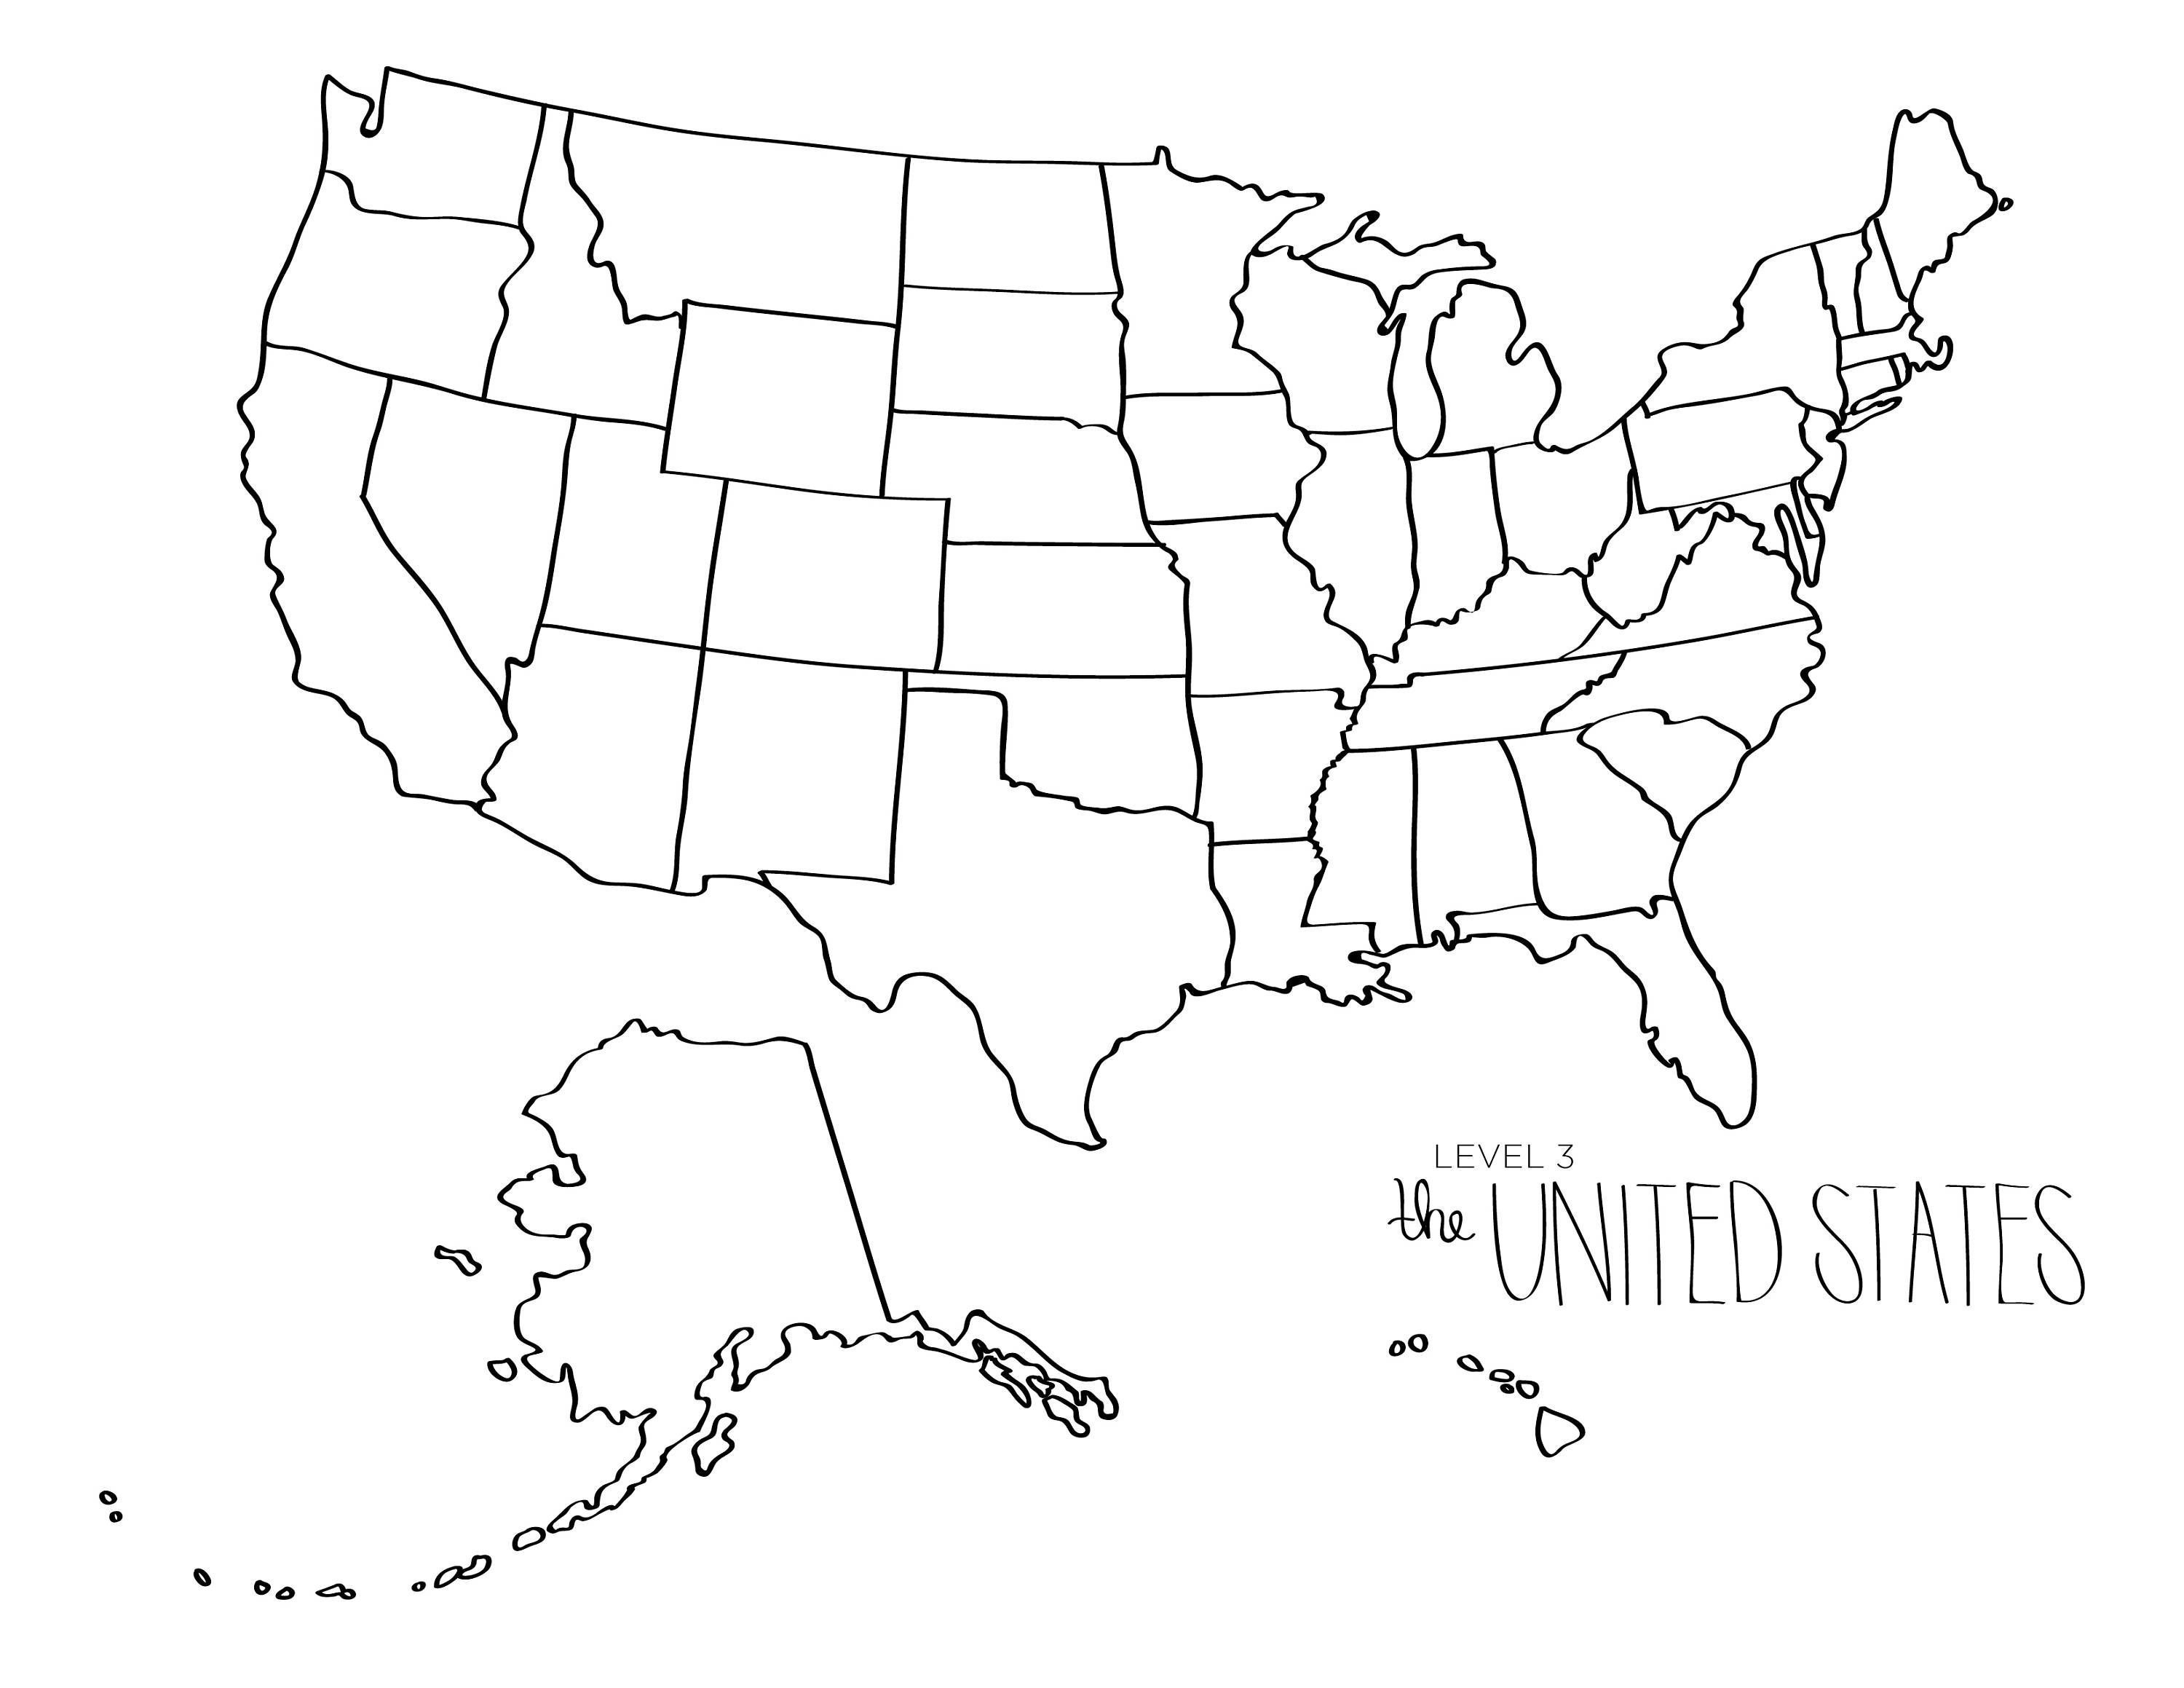 Free Blank Us Map Pdf Inspirational Free Printable Map The United - Free Printable Map Of The United States